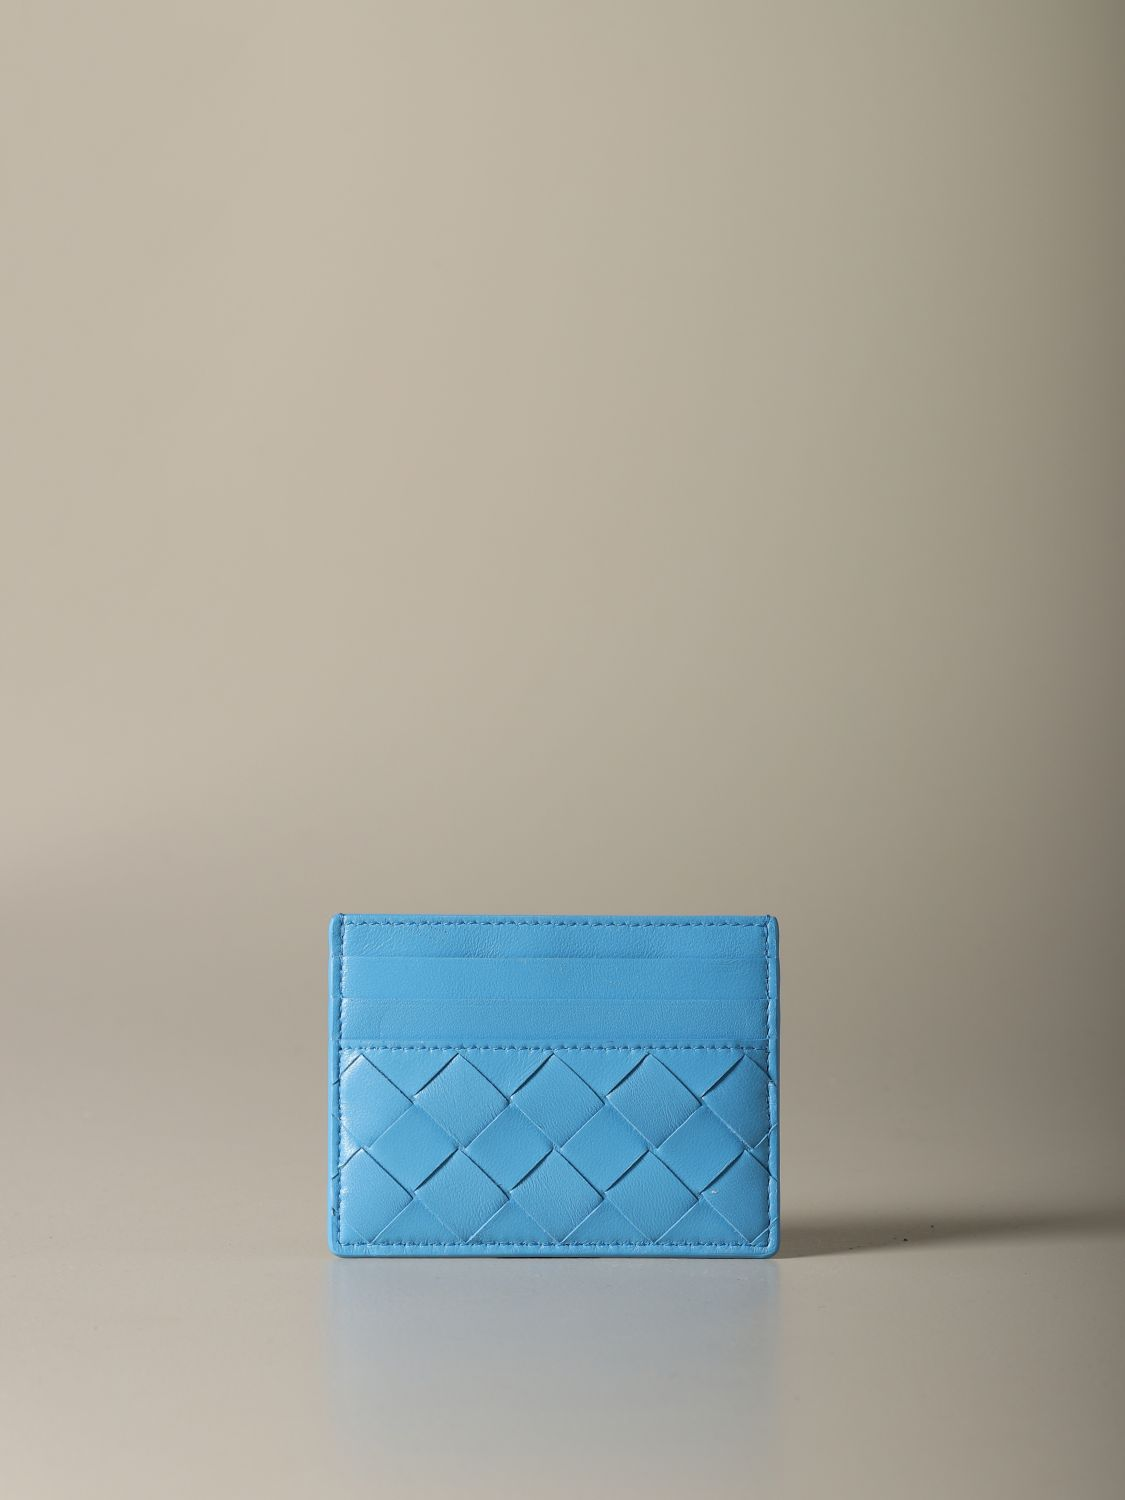 Wallet Bottega Veneta: Wallet women Bottega Veneta gnawed blue 2